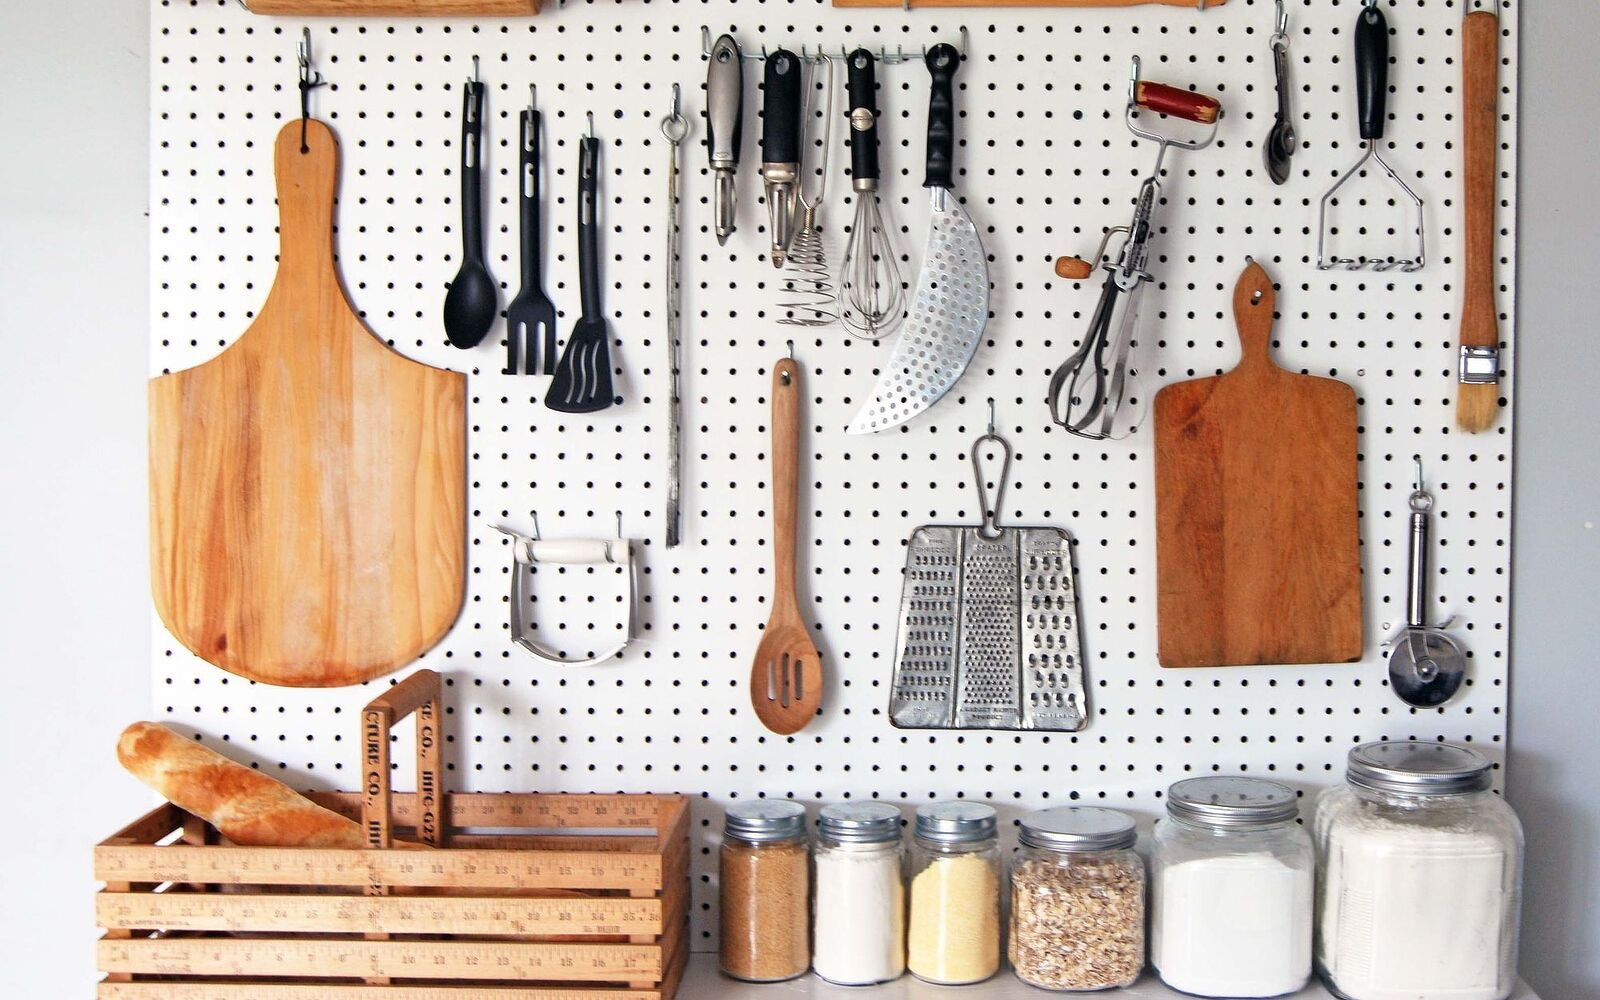 s post, Build A Pegboard For A Clean Kitchen